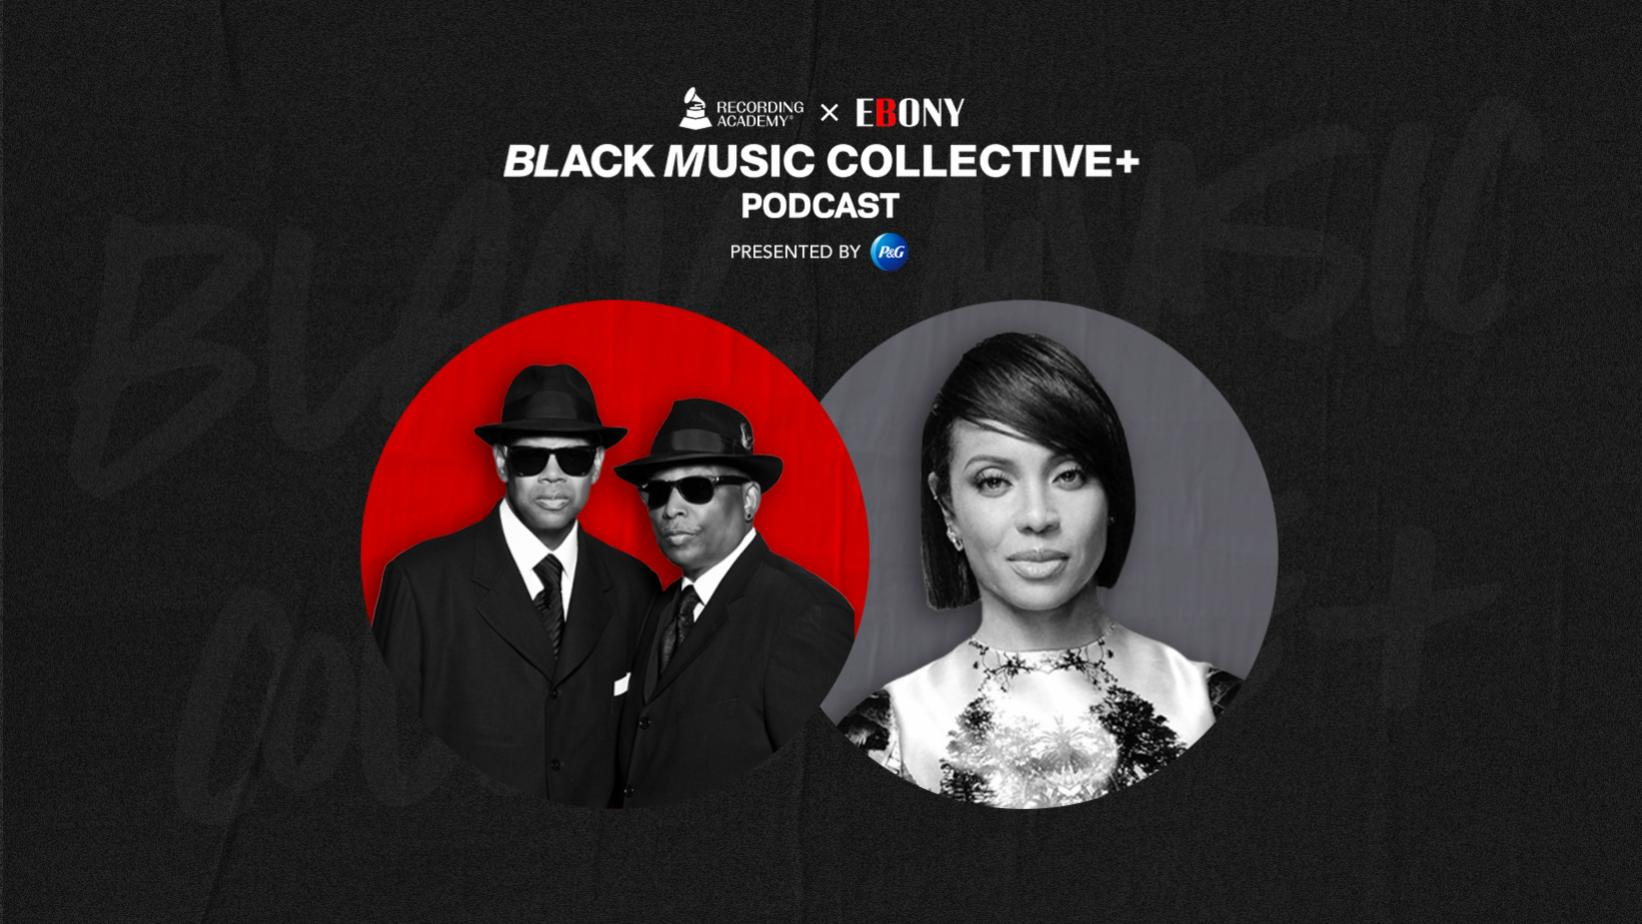 Artwork for Recording Academy x EBONY: Black Music Collective Podcast episode with Jimmy Jam & Terry Lewis